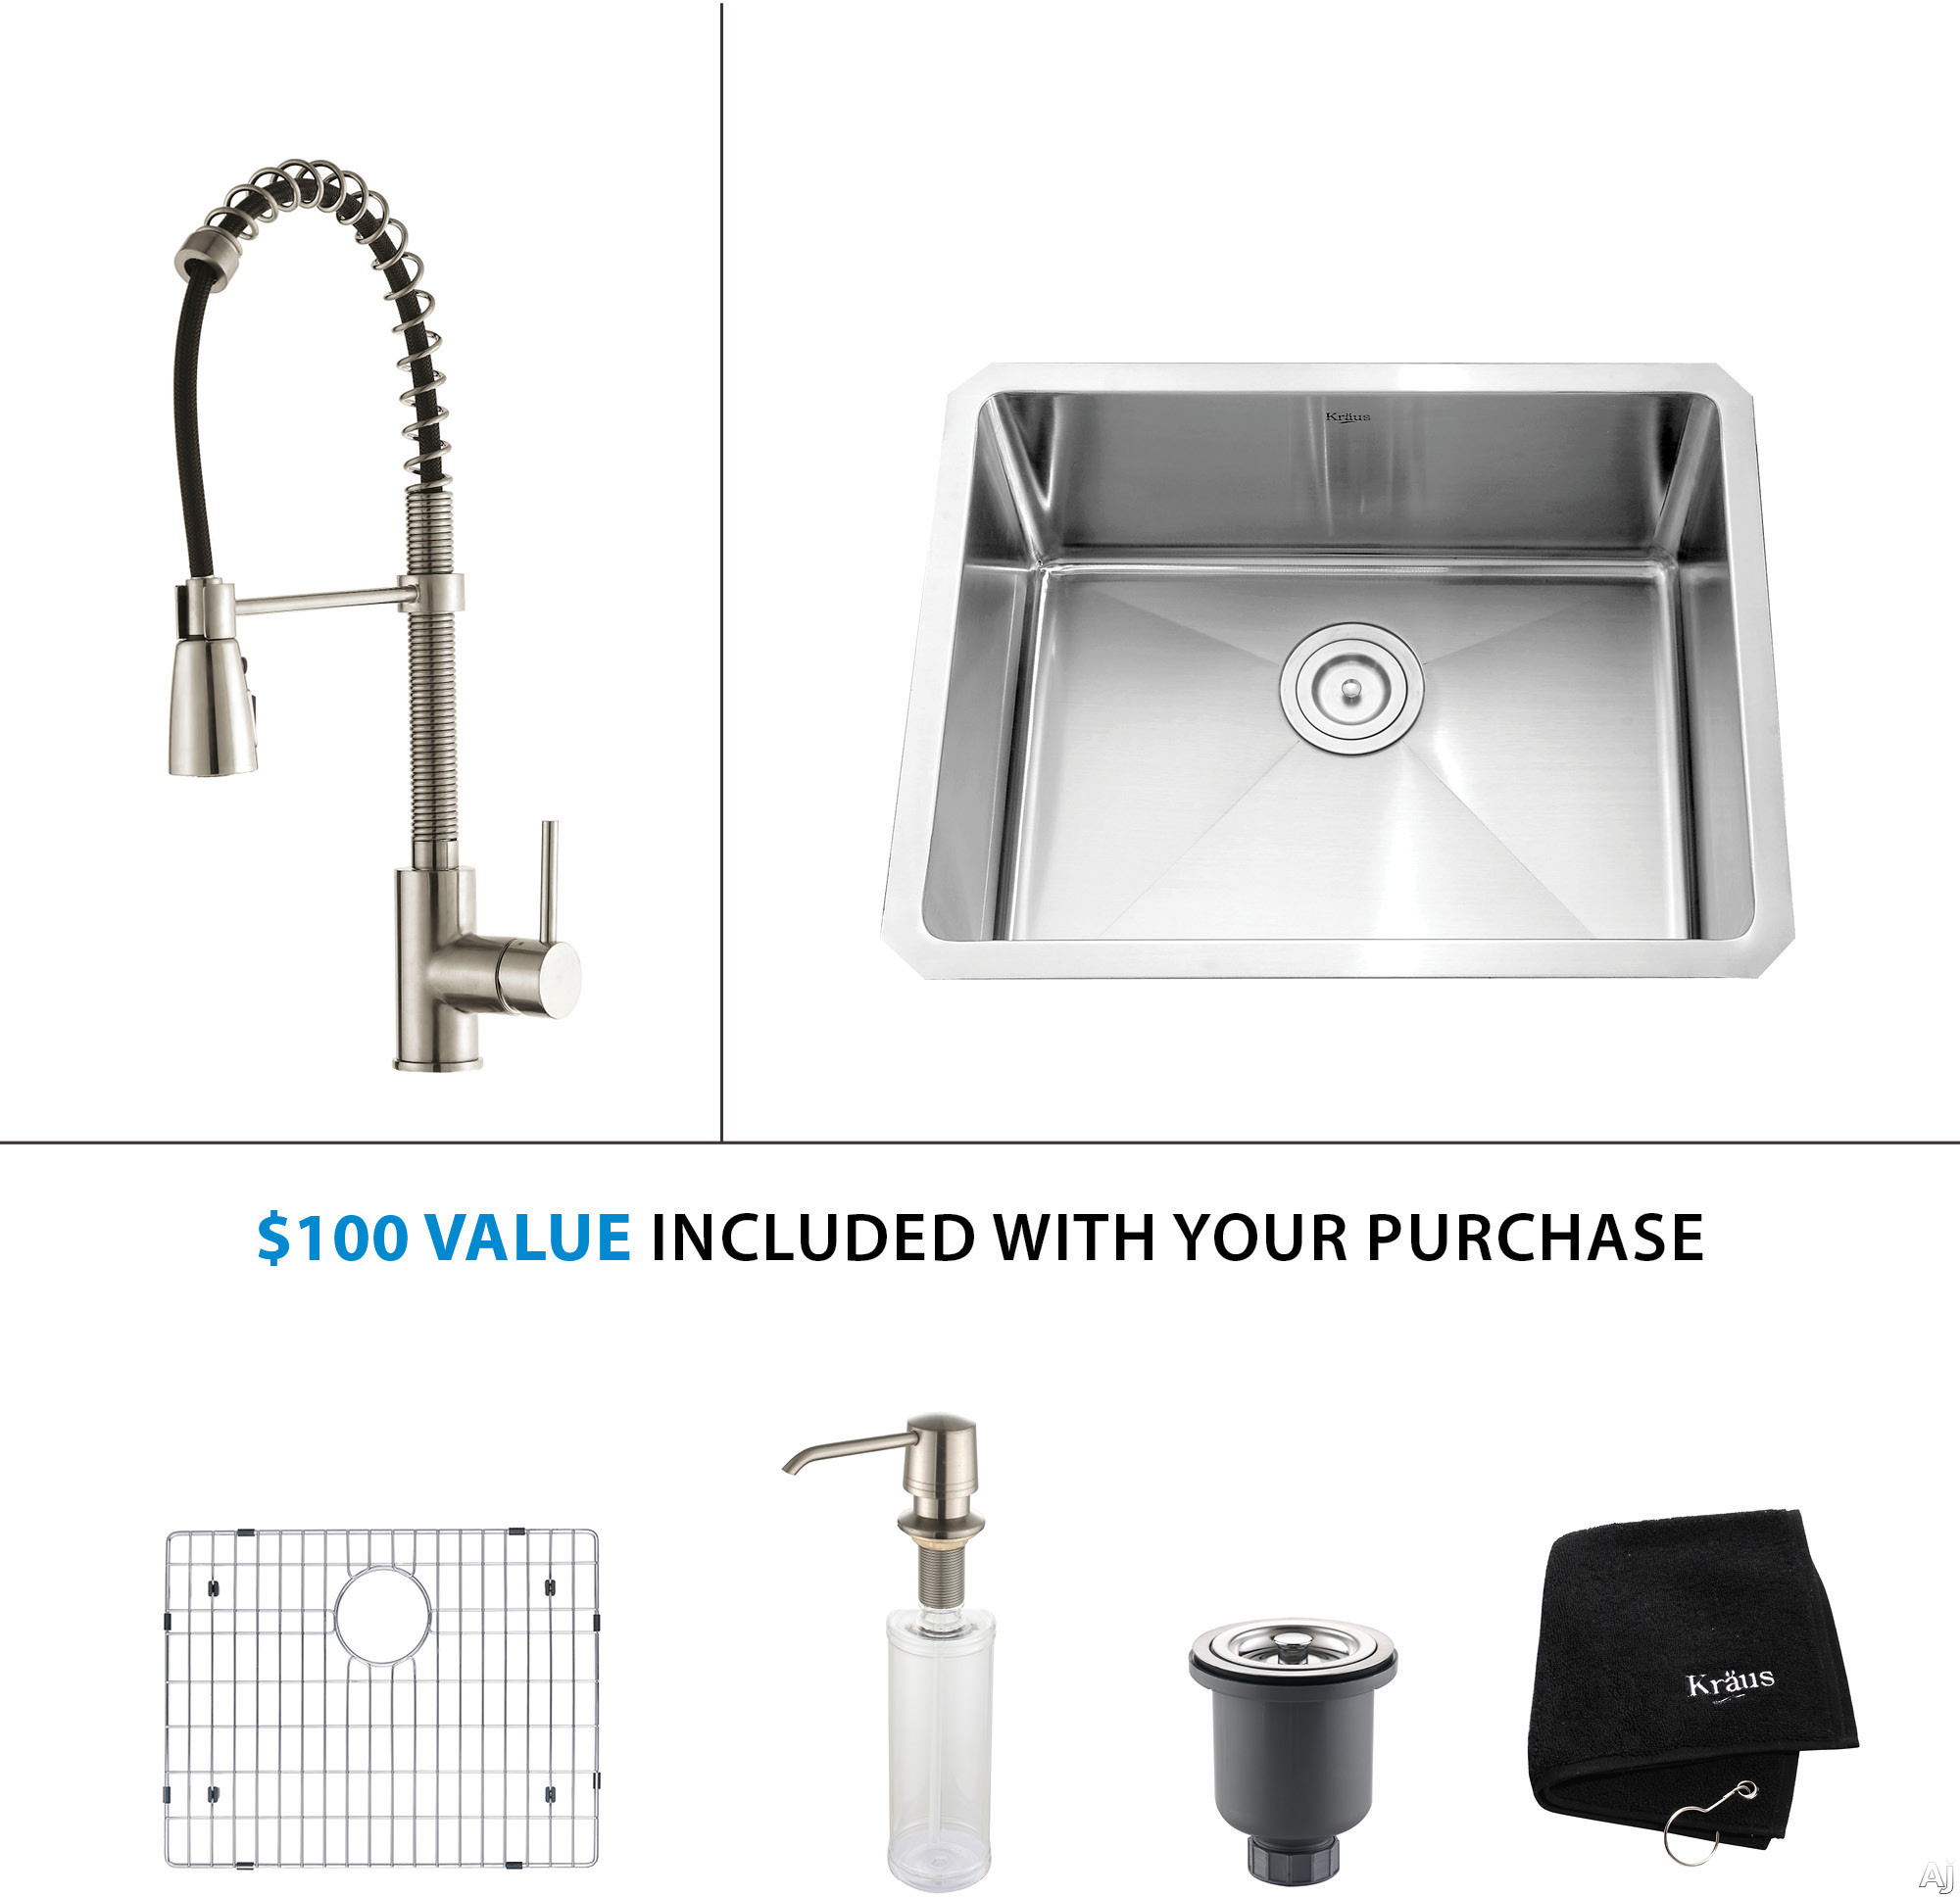 Image of Kraus Kitchen Combo Series KHU10123KPF1612KSD30SS 23 Inch Undermount Single Bowl Stainless Steel Sink with Pull-Out Faucet, Pop-up Drain, 10 Inch Bowl Depth, 16-Gauge Stainless Steel, Satin Finish and ADA Compliant: Stainless Steel Faucet